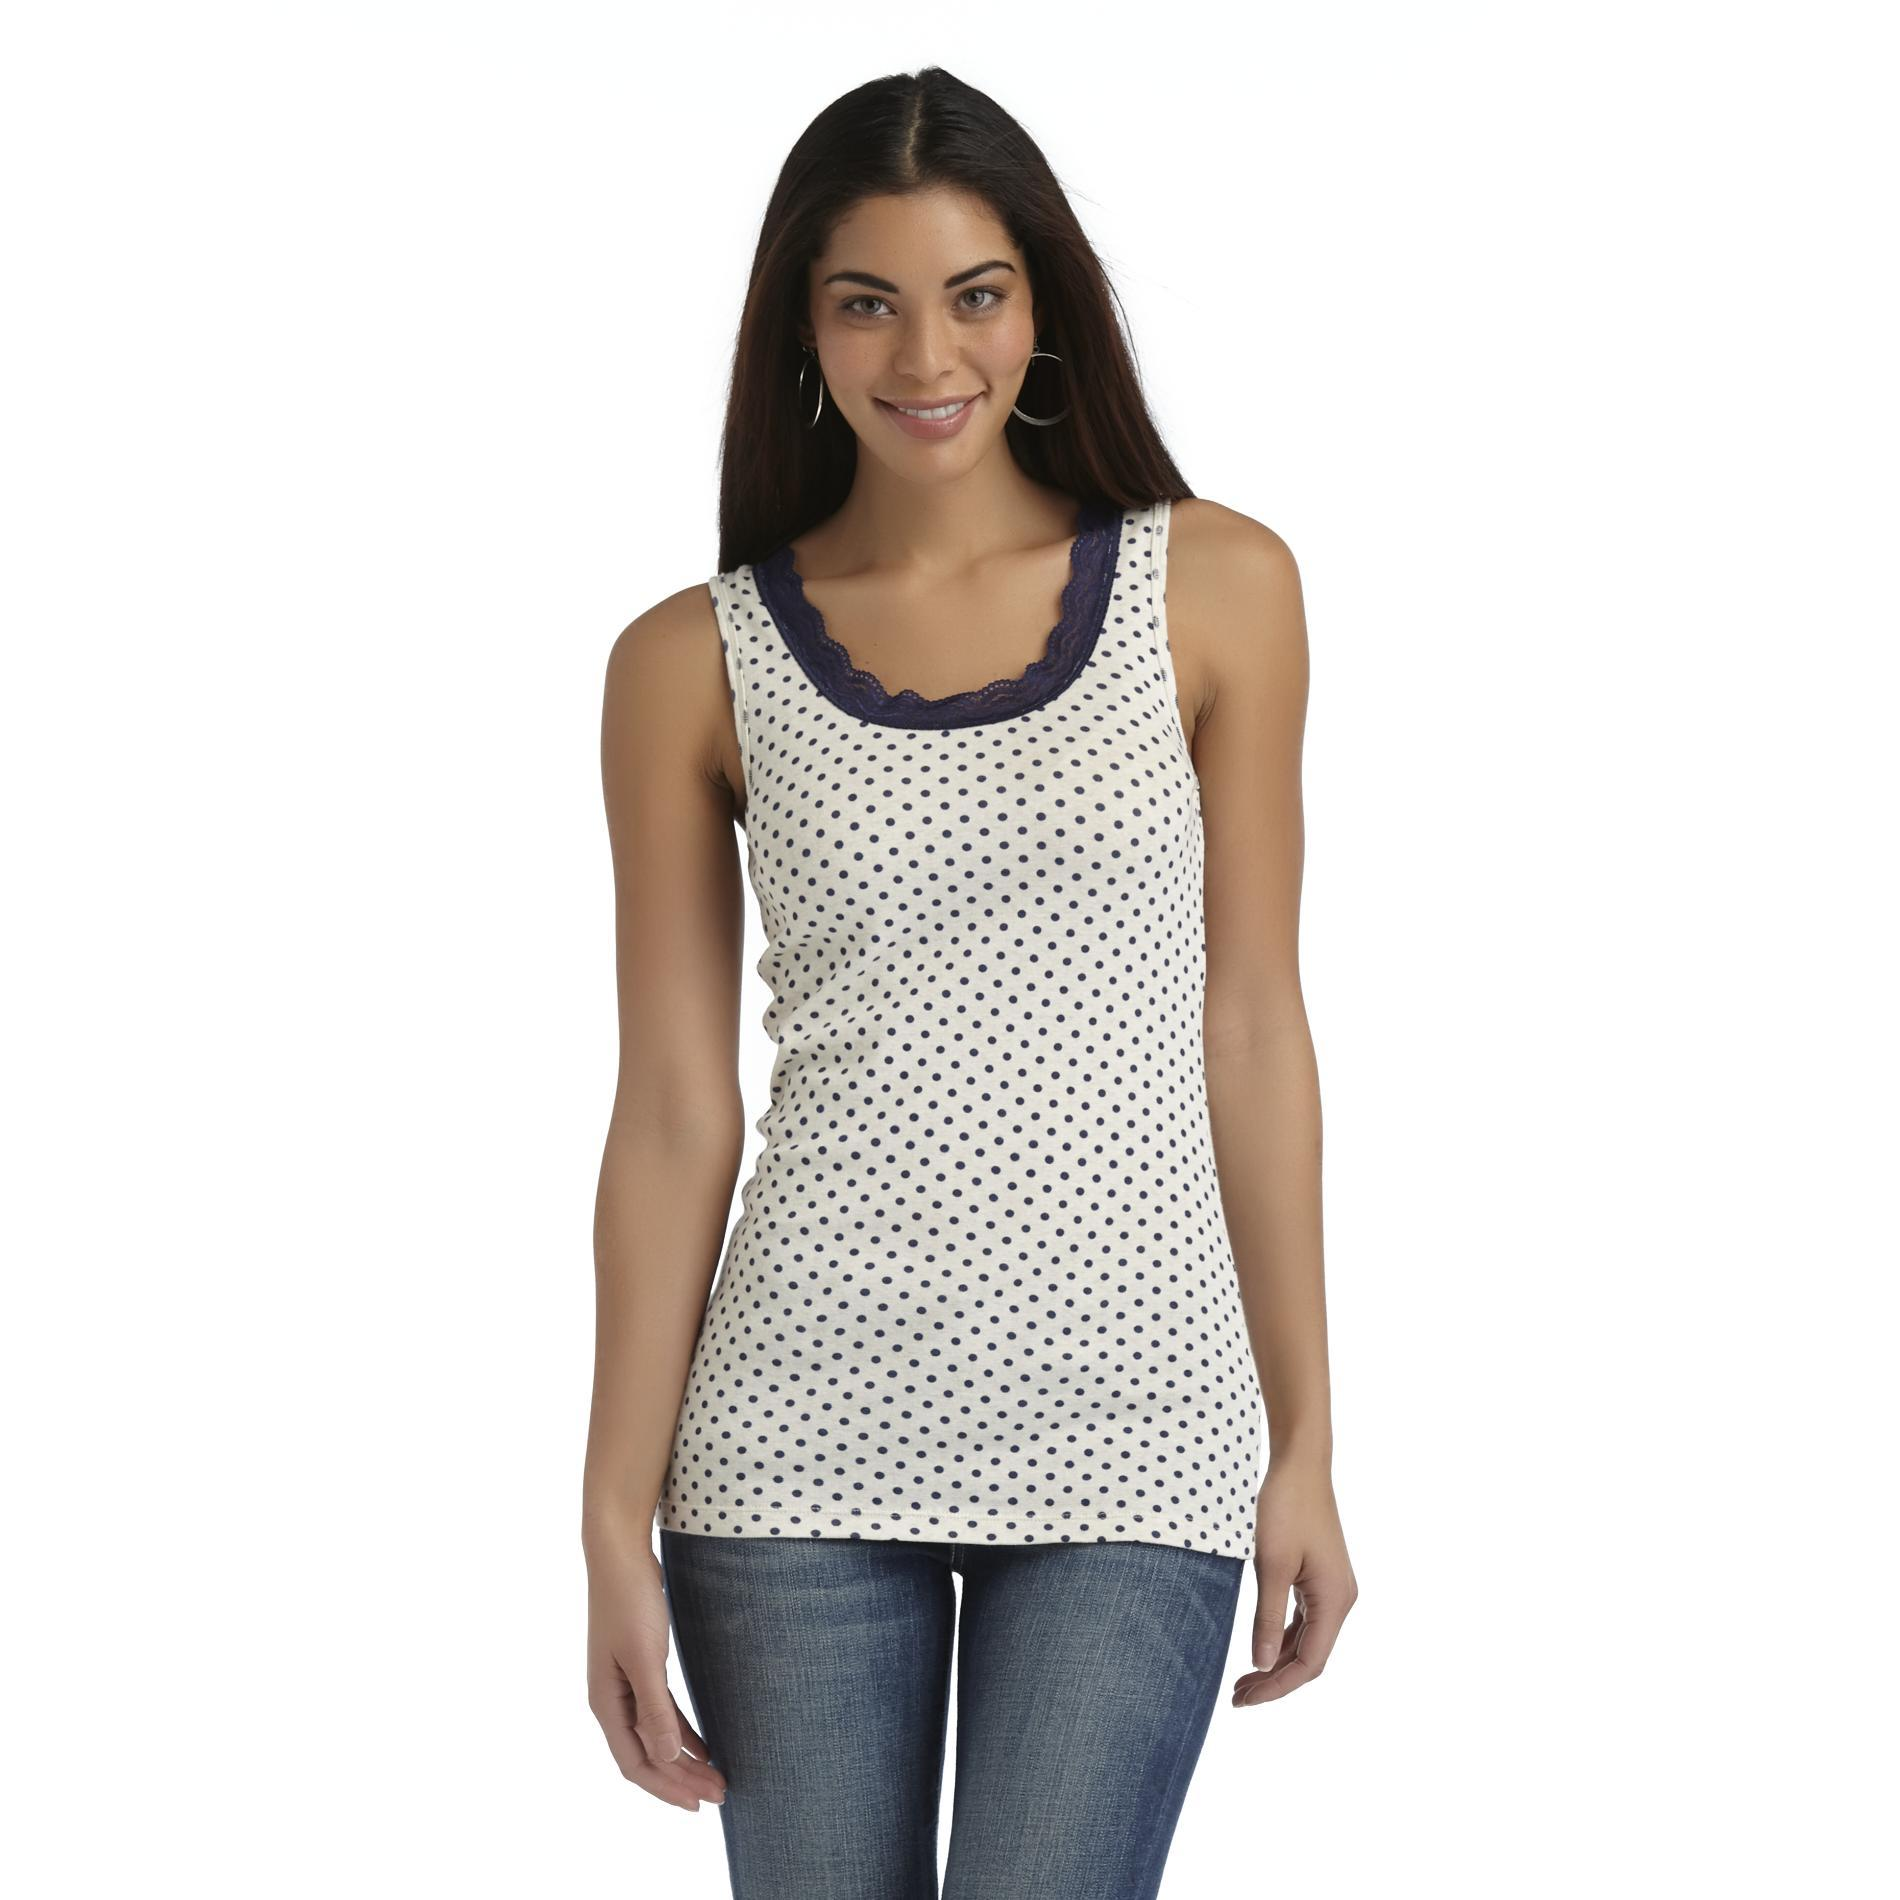 Canyon River Blues Women's Ribbed Tank Top - Polka Dots at Sears.com